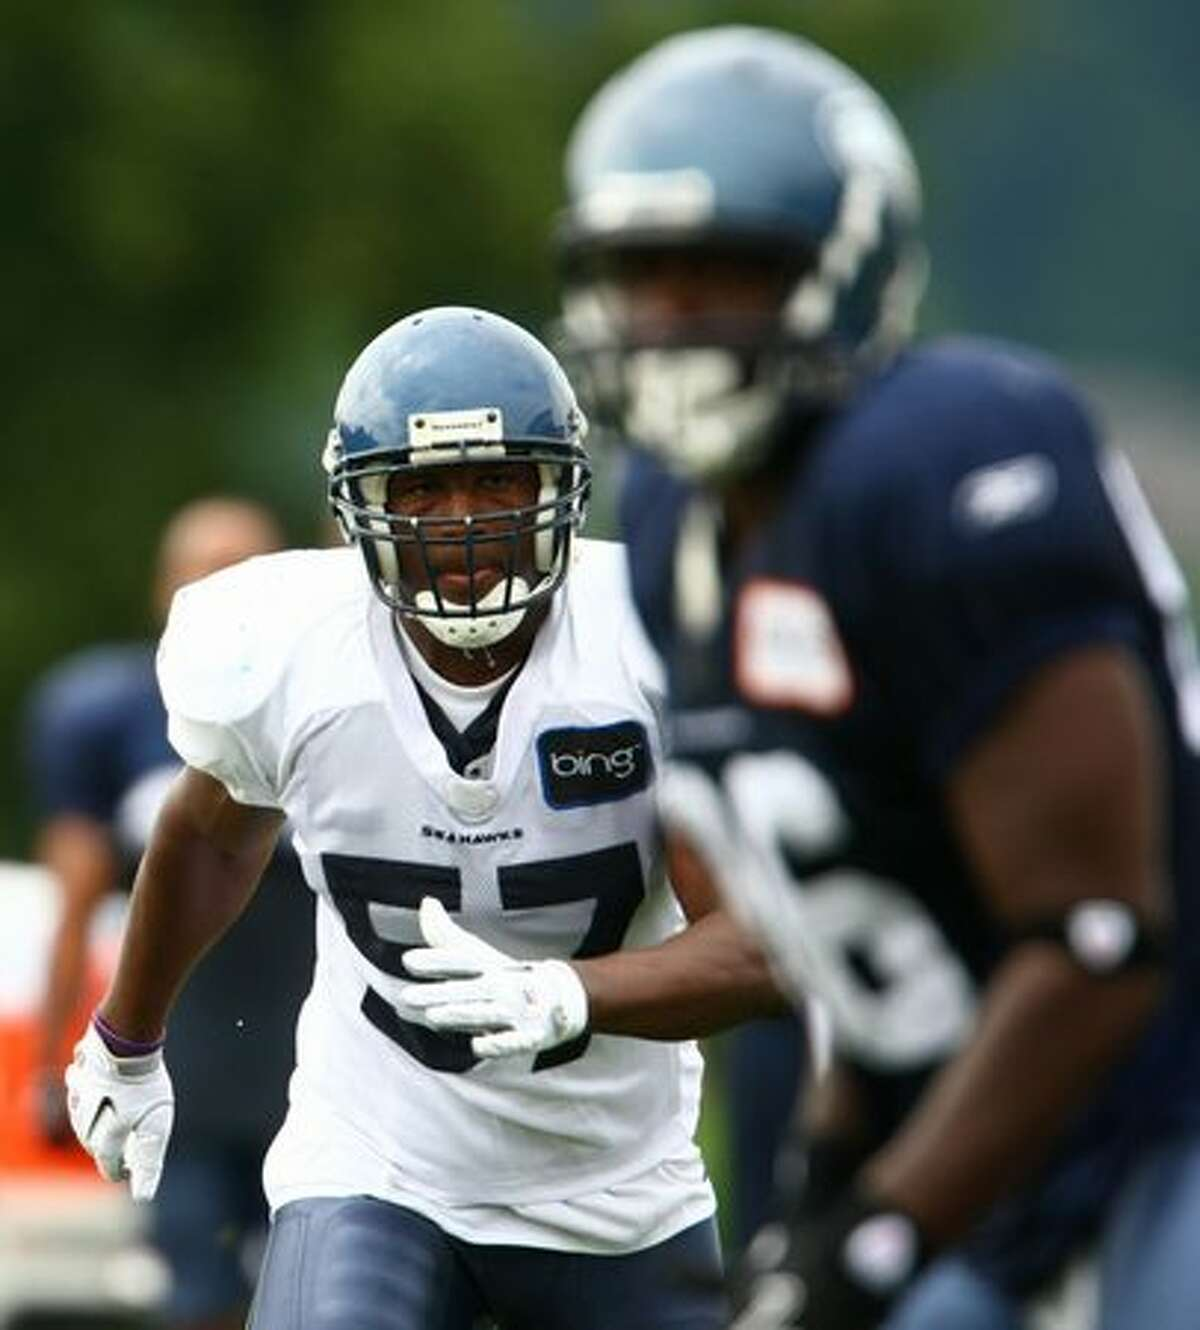 Seattle Seahawk David Hawthorne (57) practices with teammates.